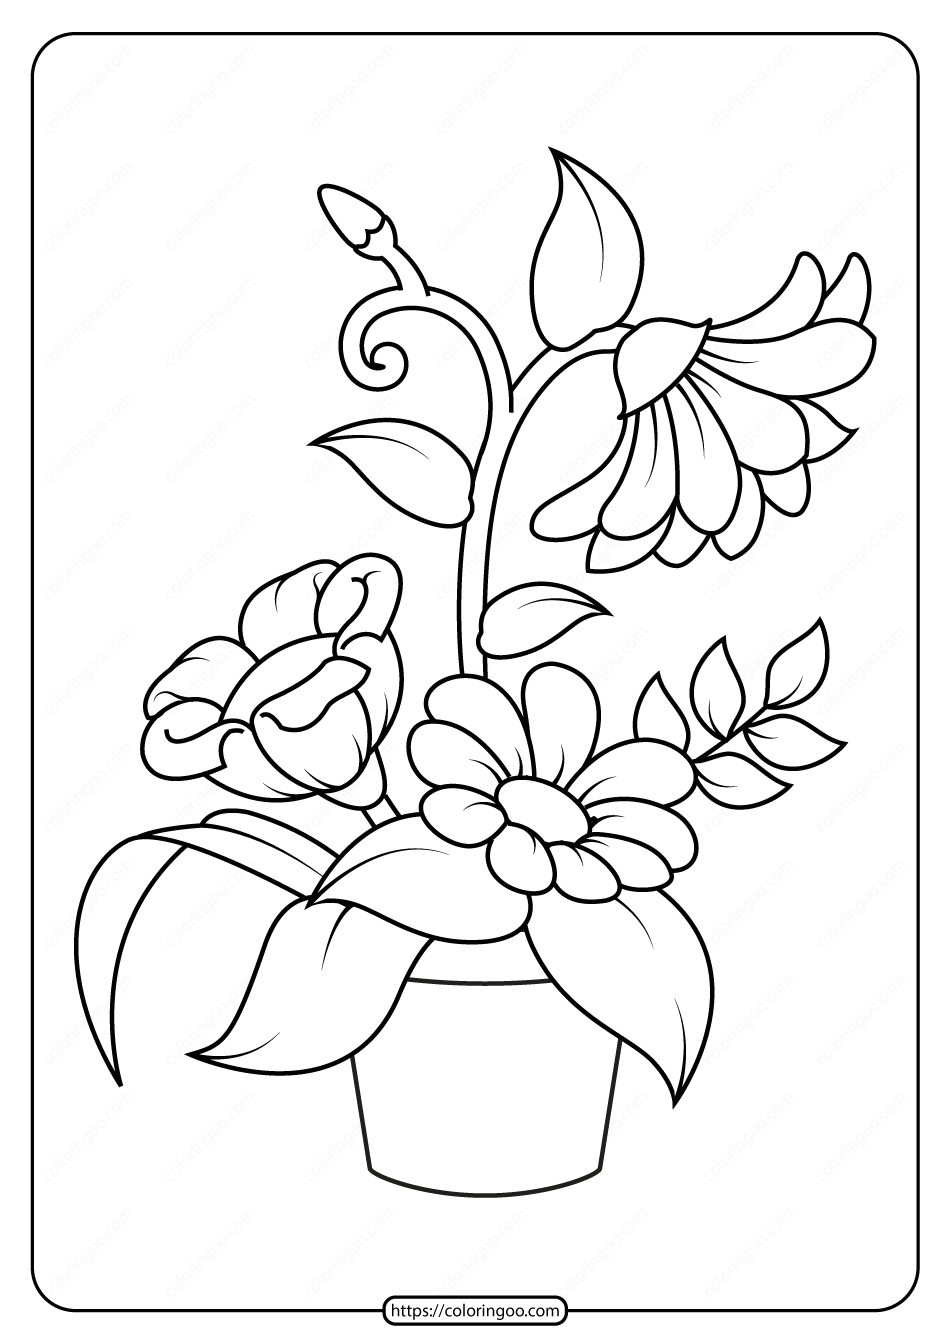 flower printable coloring pages flower coloring pages for adults best coloring pages for pages flower printable coloring